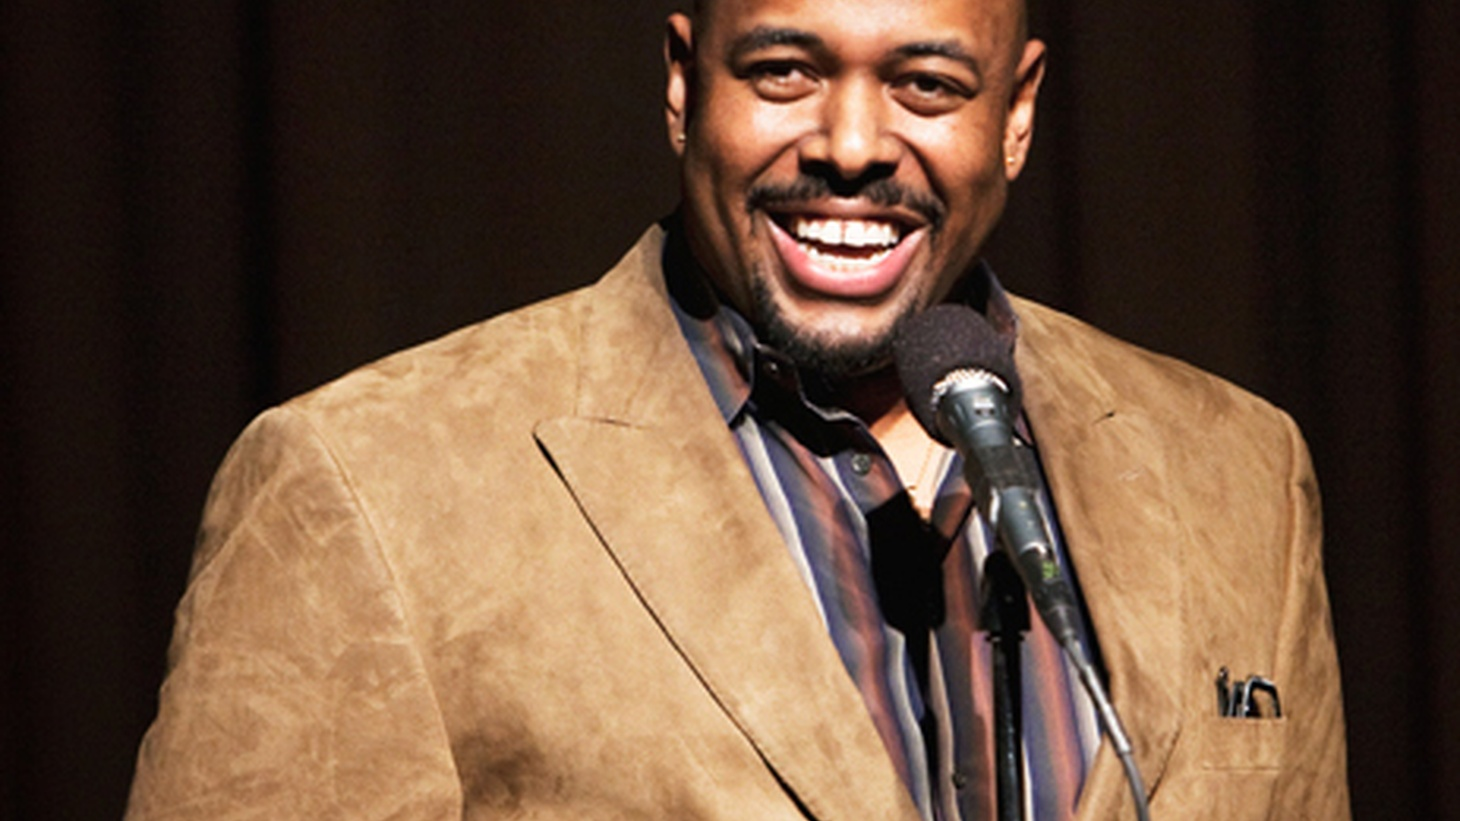 This special episode of The Moth Radio Hour includes stories from Christian McBride, Karen Gearon, and Dr. Mary-Claire King.